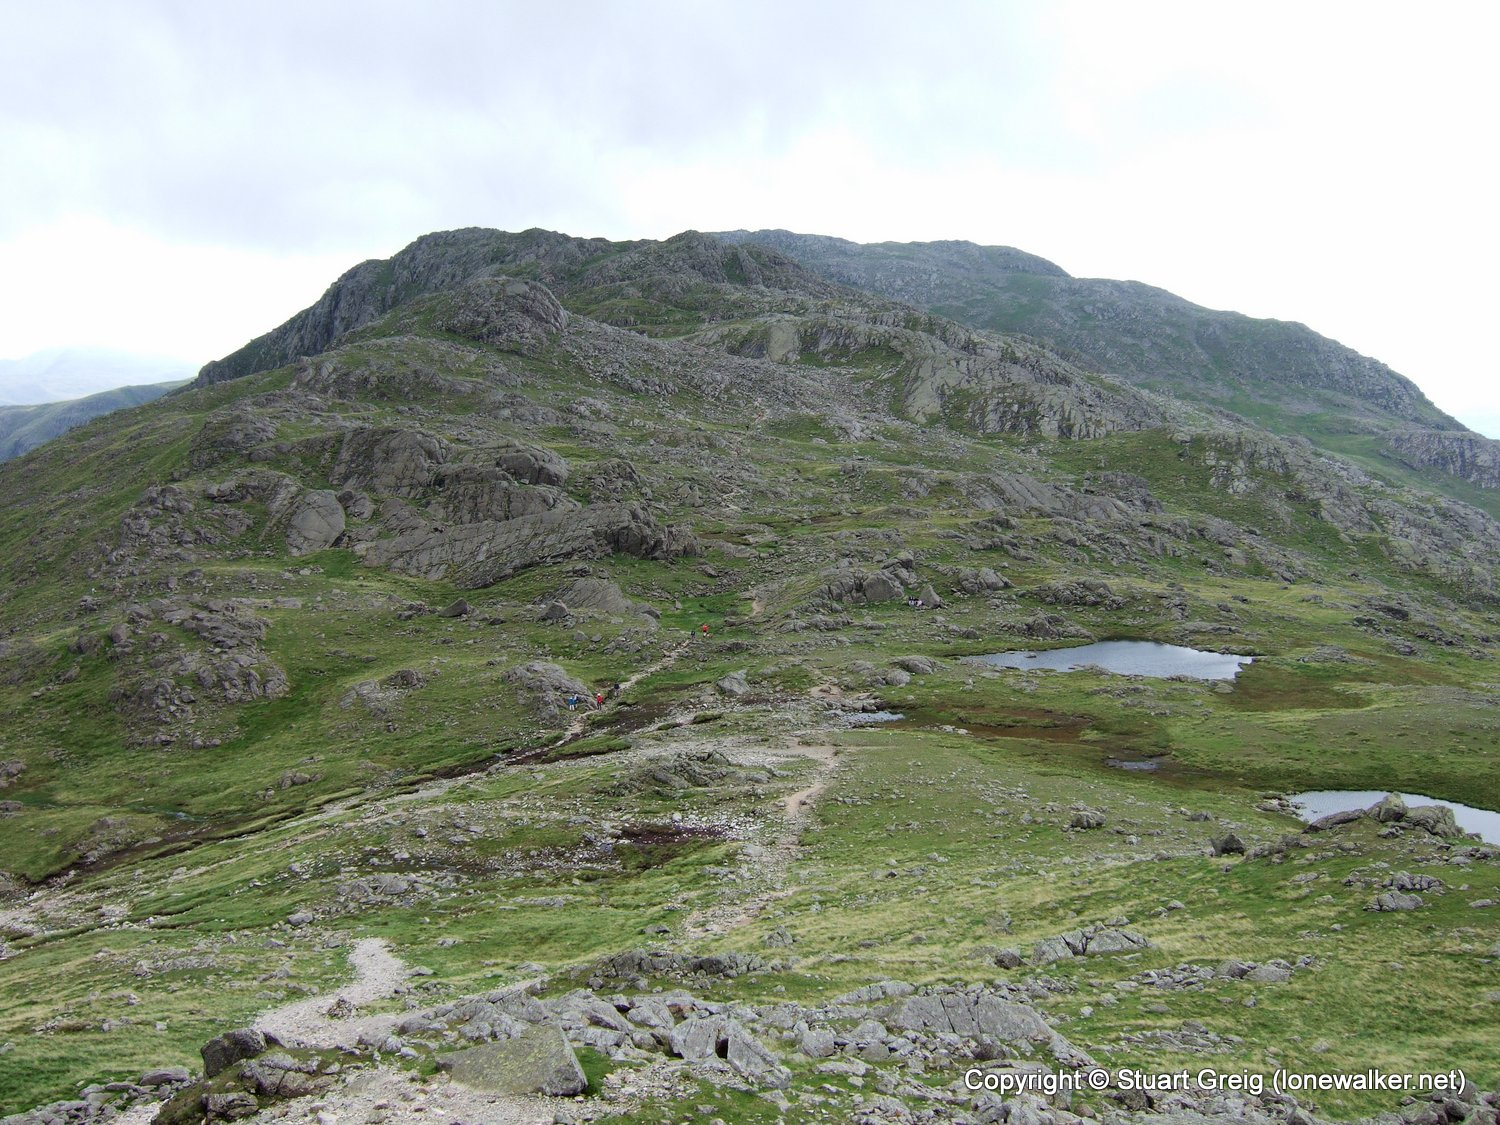 Esk Pike and Bow Fell